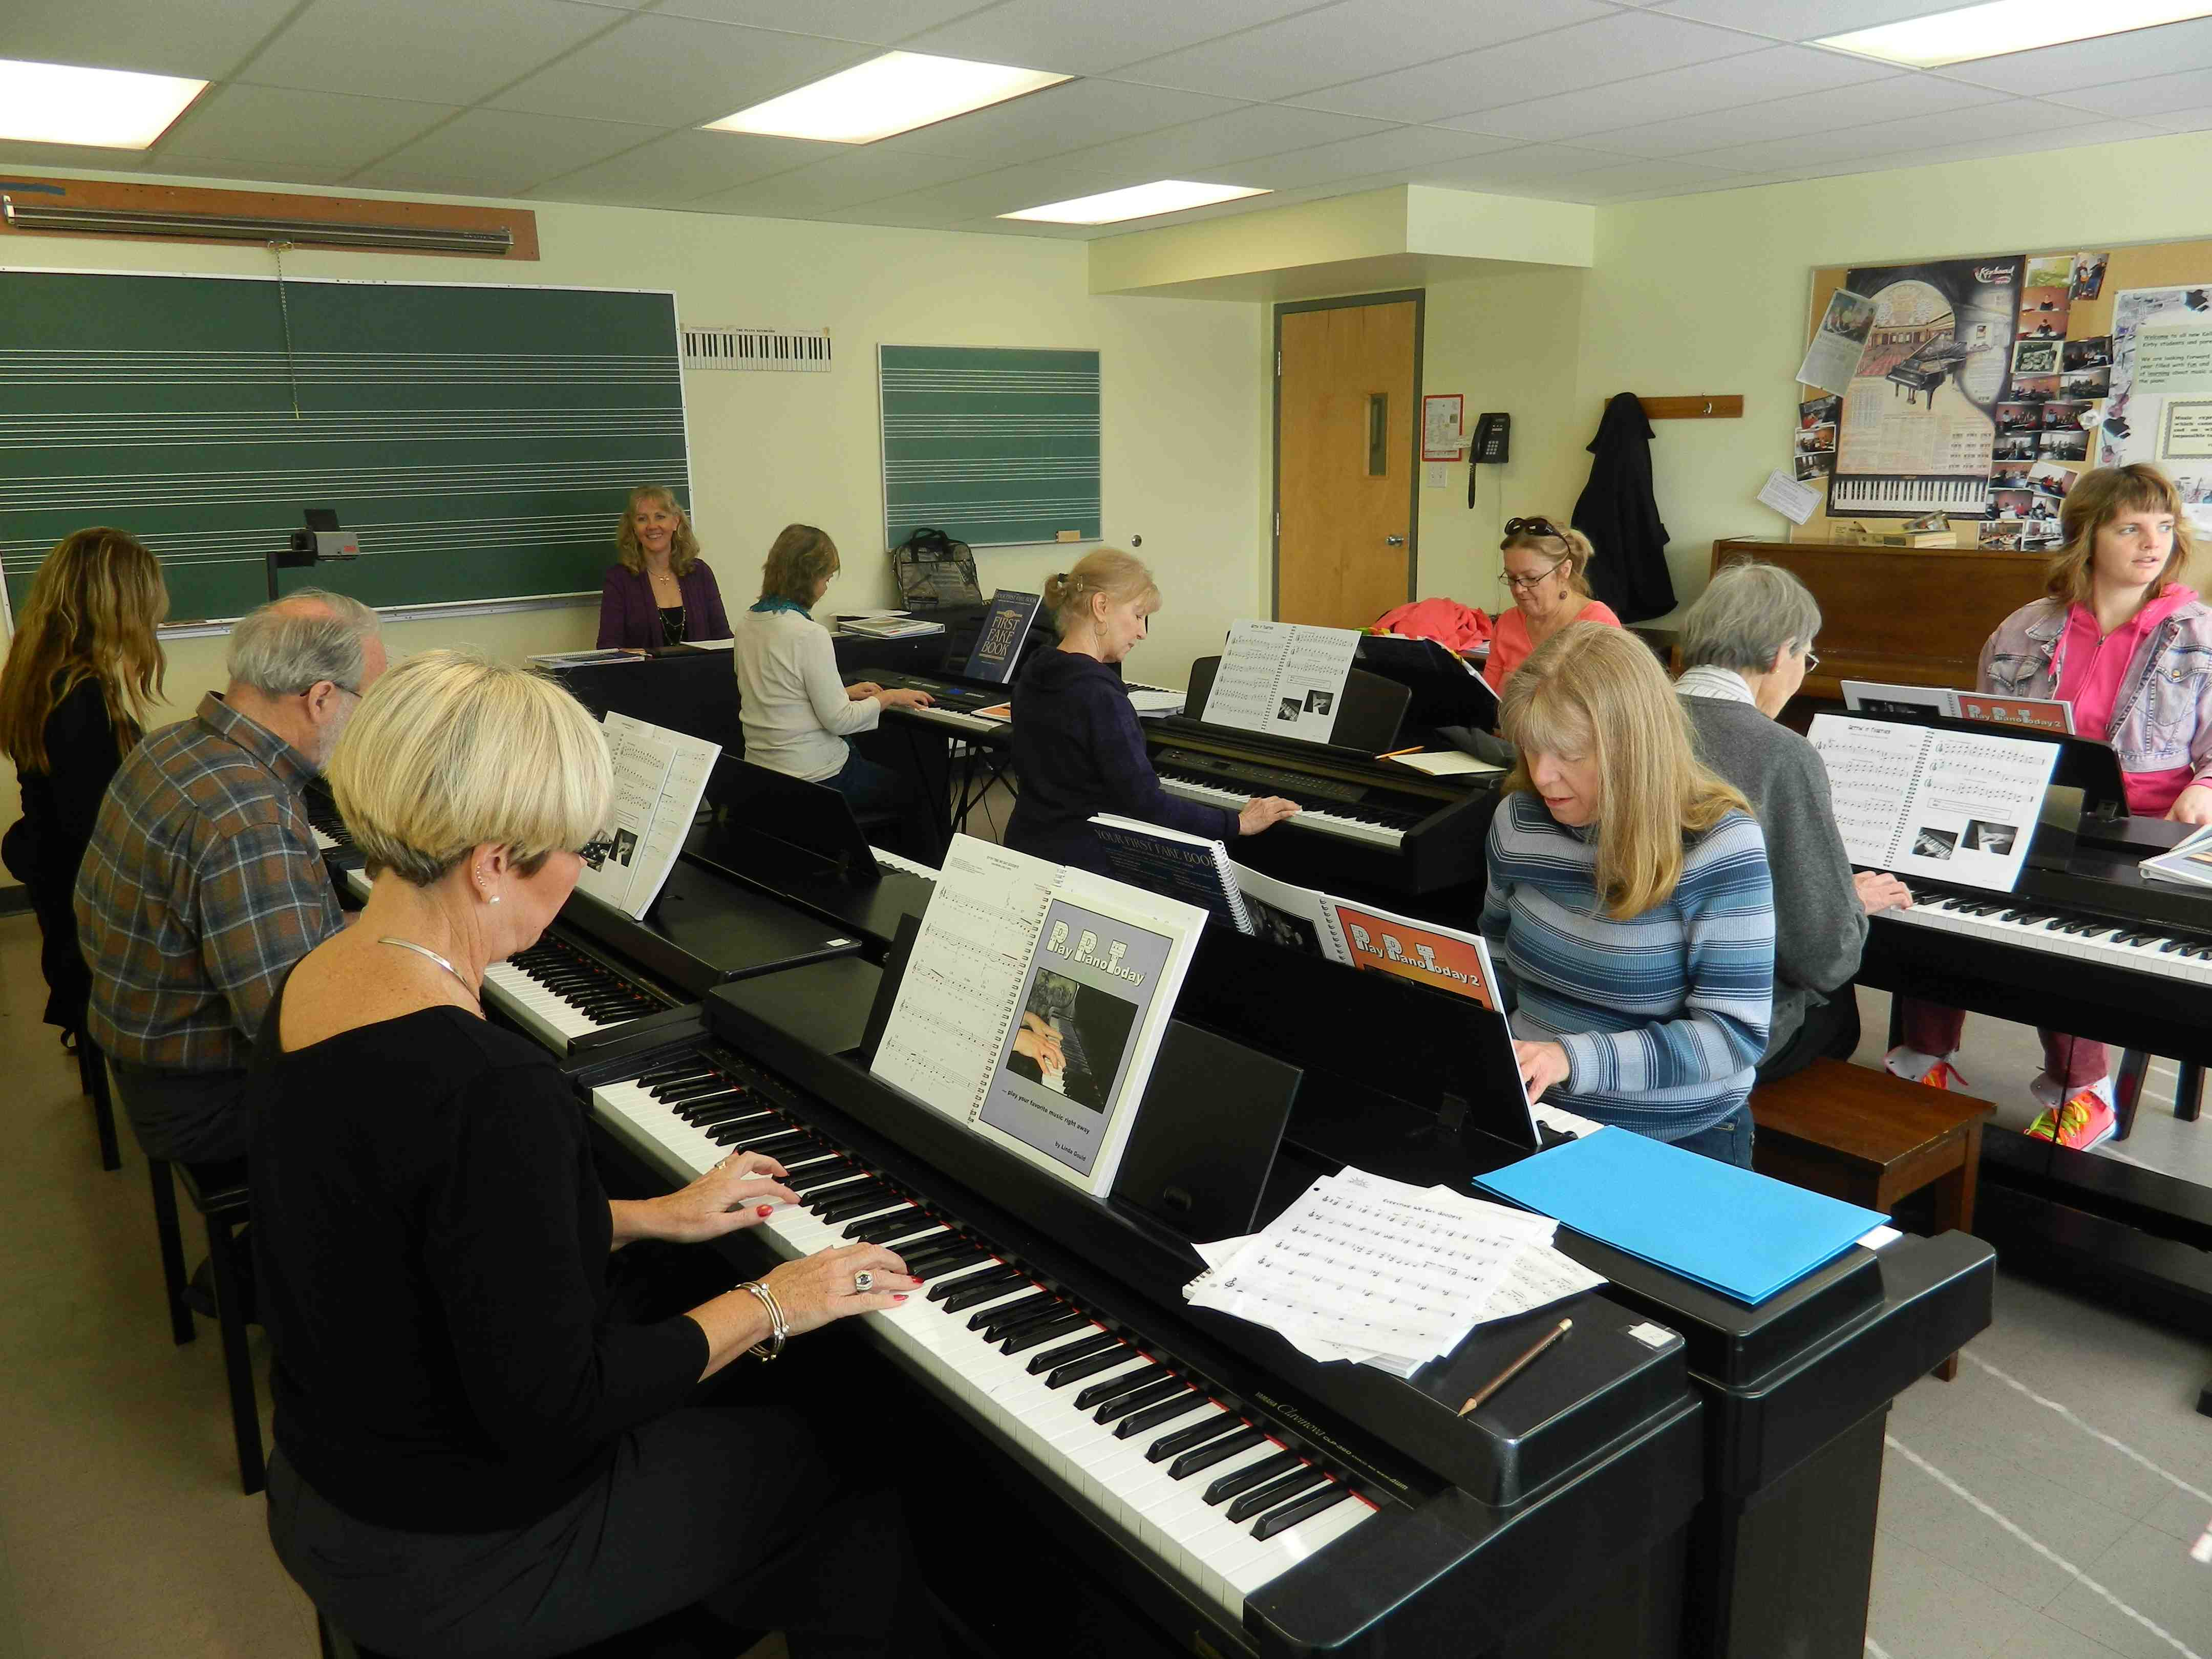 Christmas Piano Workshop - Linda Gould - Victoria Conservatory of Music   Victoria Conservatory ...